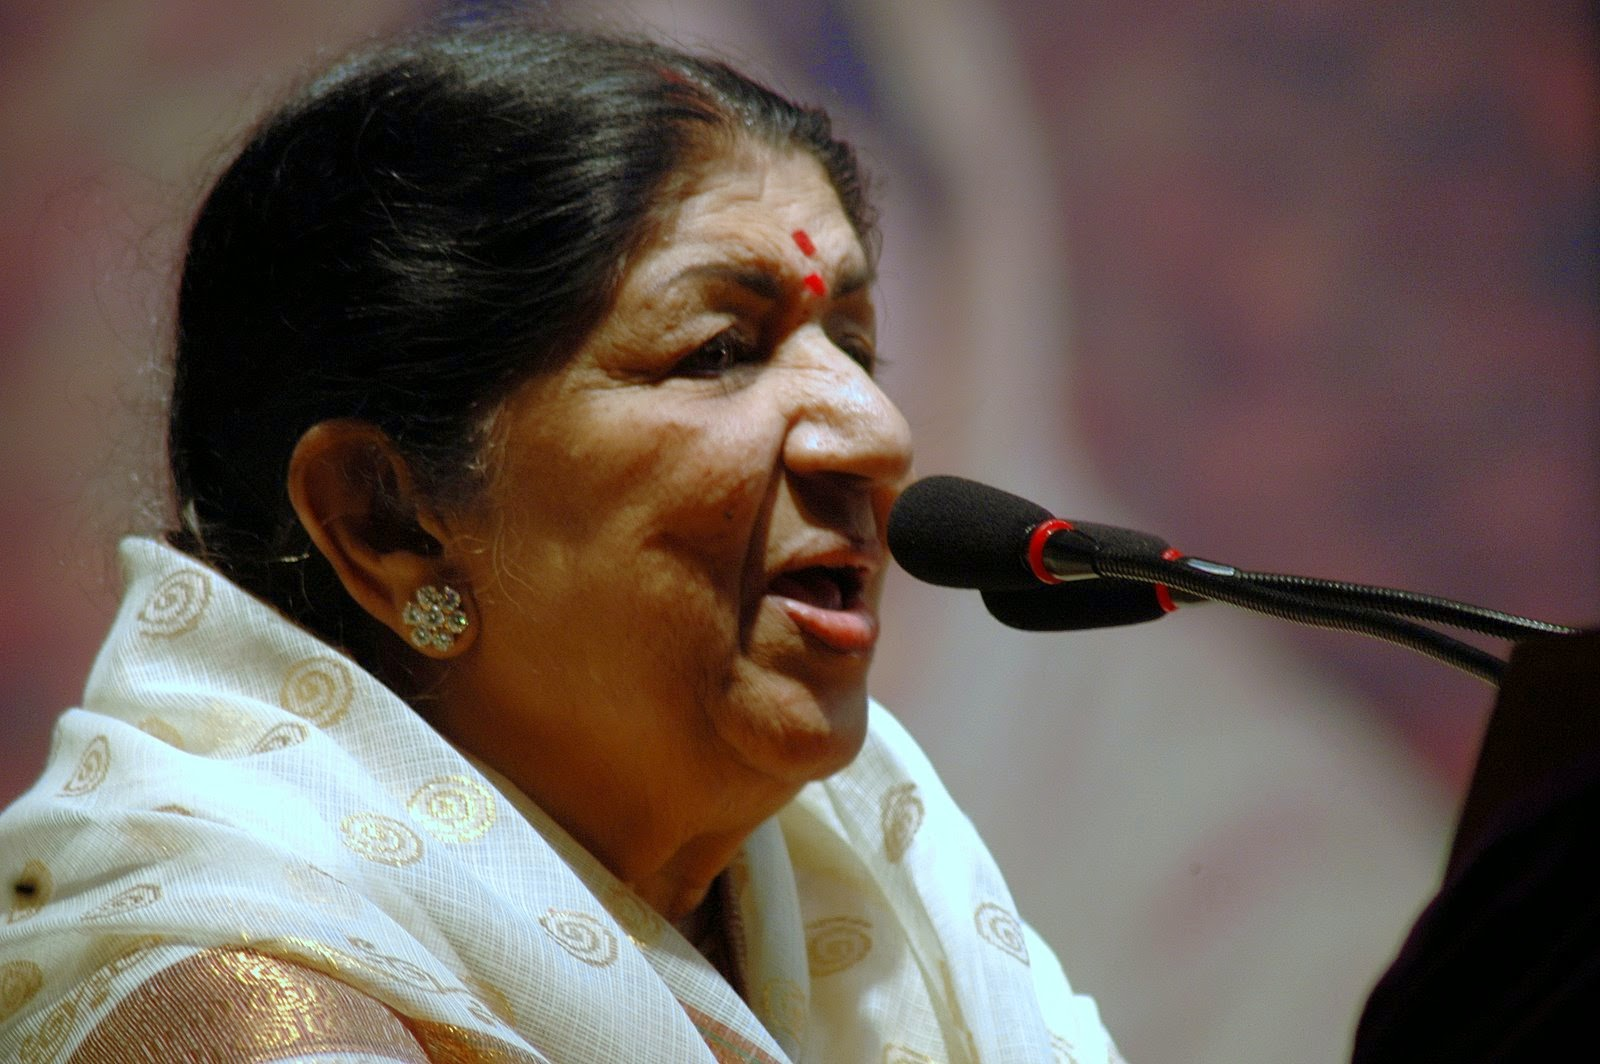 information about lata mangeshkar Lata mangeshkar is the most versatile plyback singer of india she holds the record for the maximum number of songs here are some interesting facts about her.